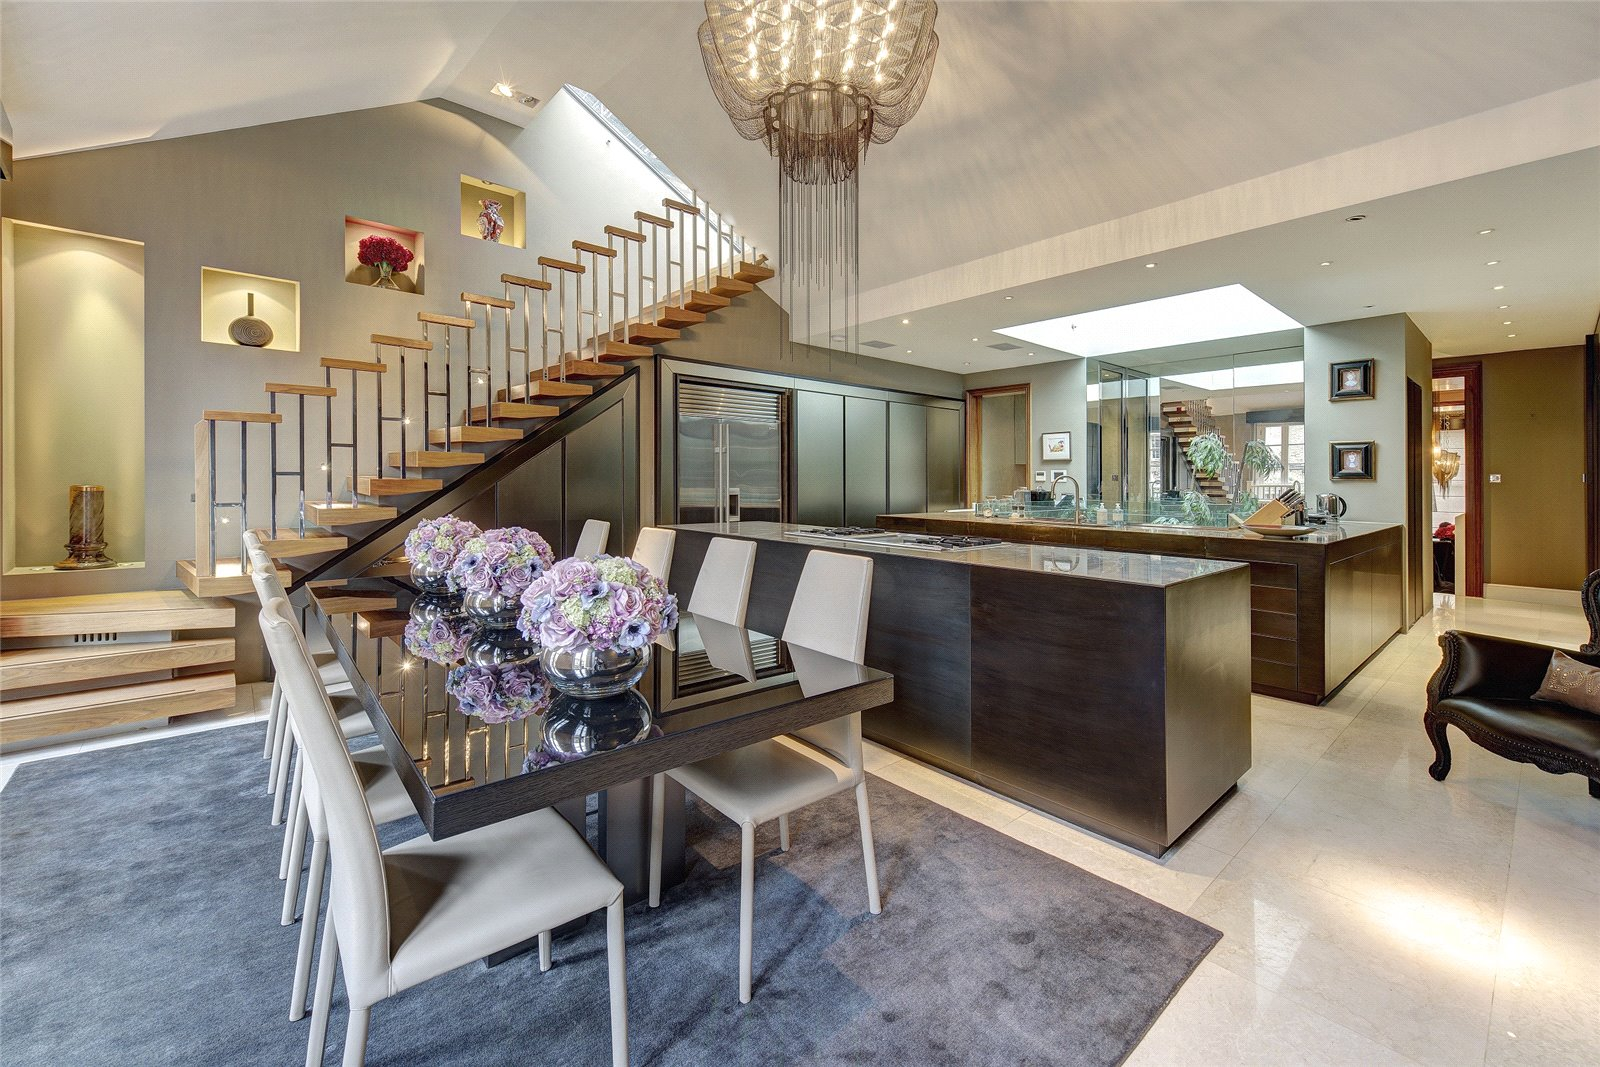 House for Sale at Eaton Square, Belgravia, London, SW1W Eaton Square, Belgravia, London, SW1W